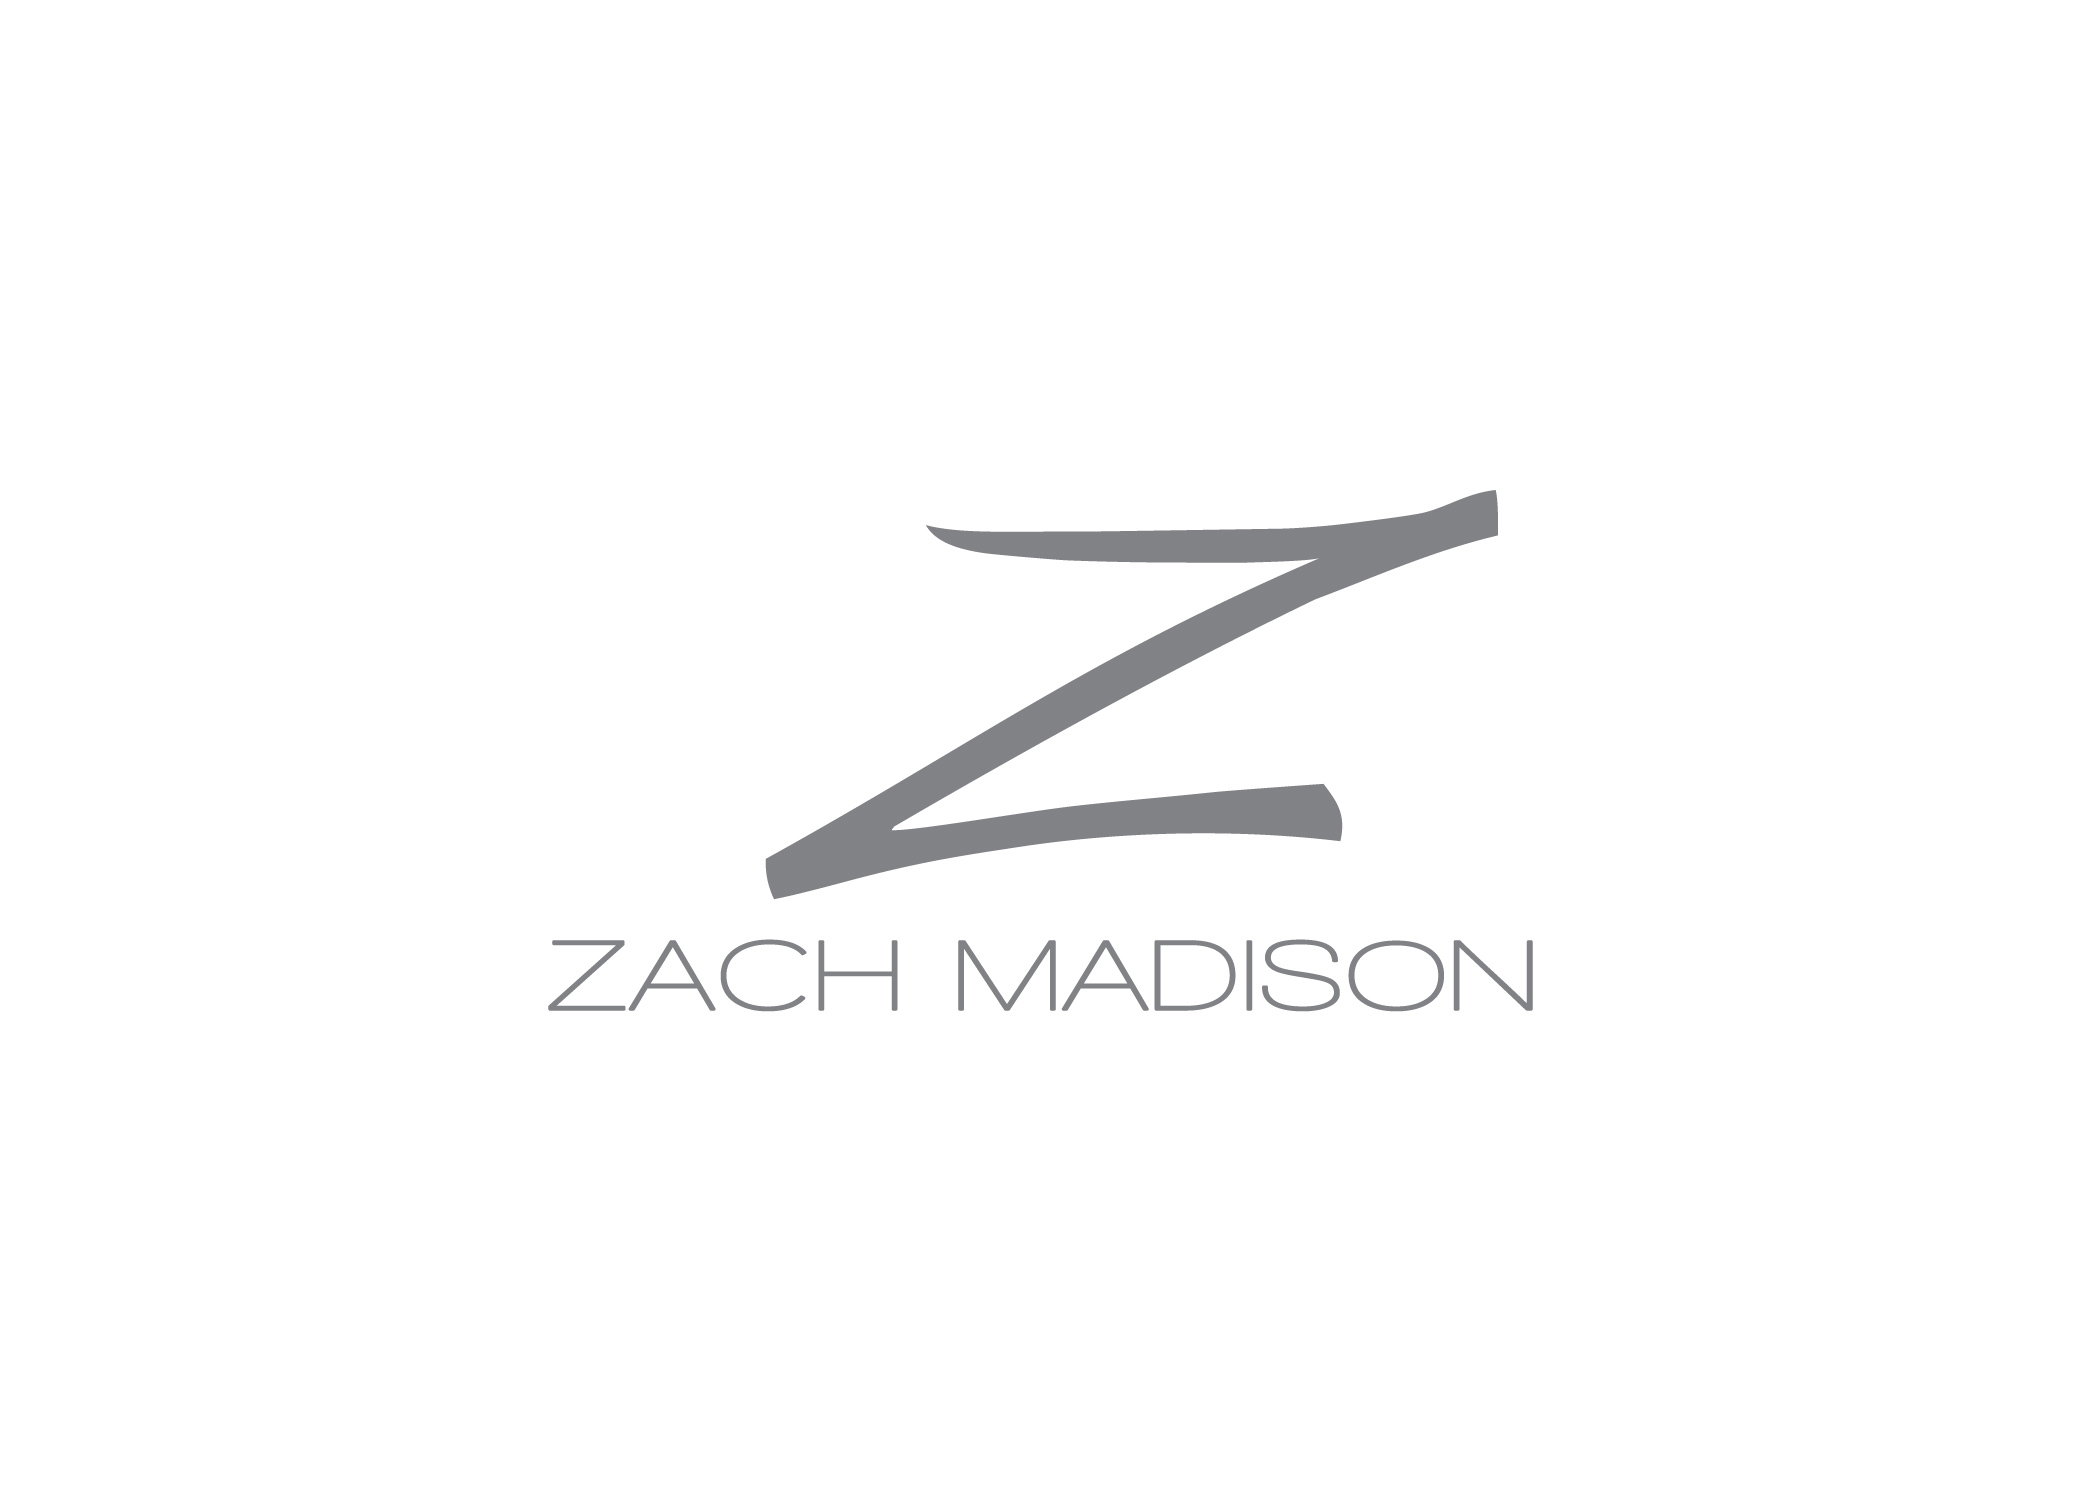 Zach Madison modern black and white logo design with large Z rendered in swift brush strokes over brand name.